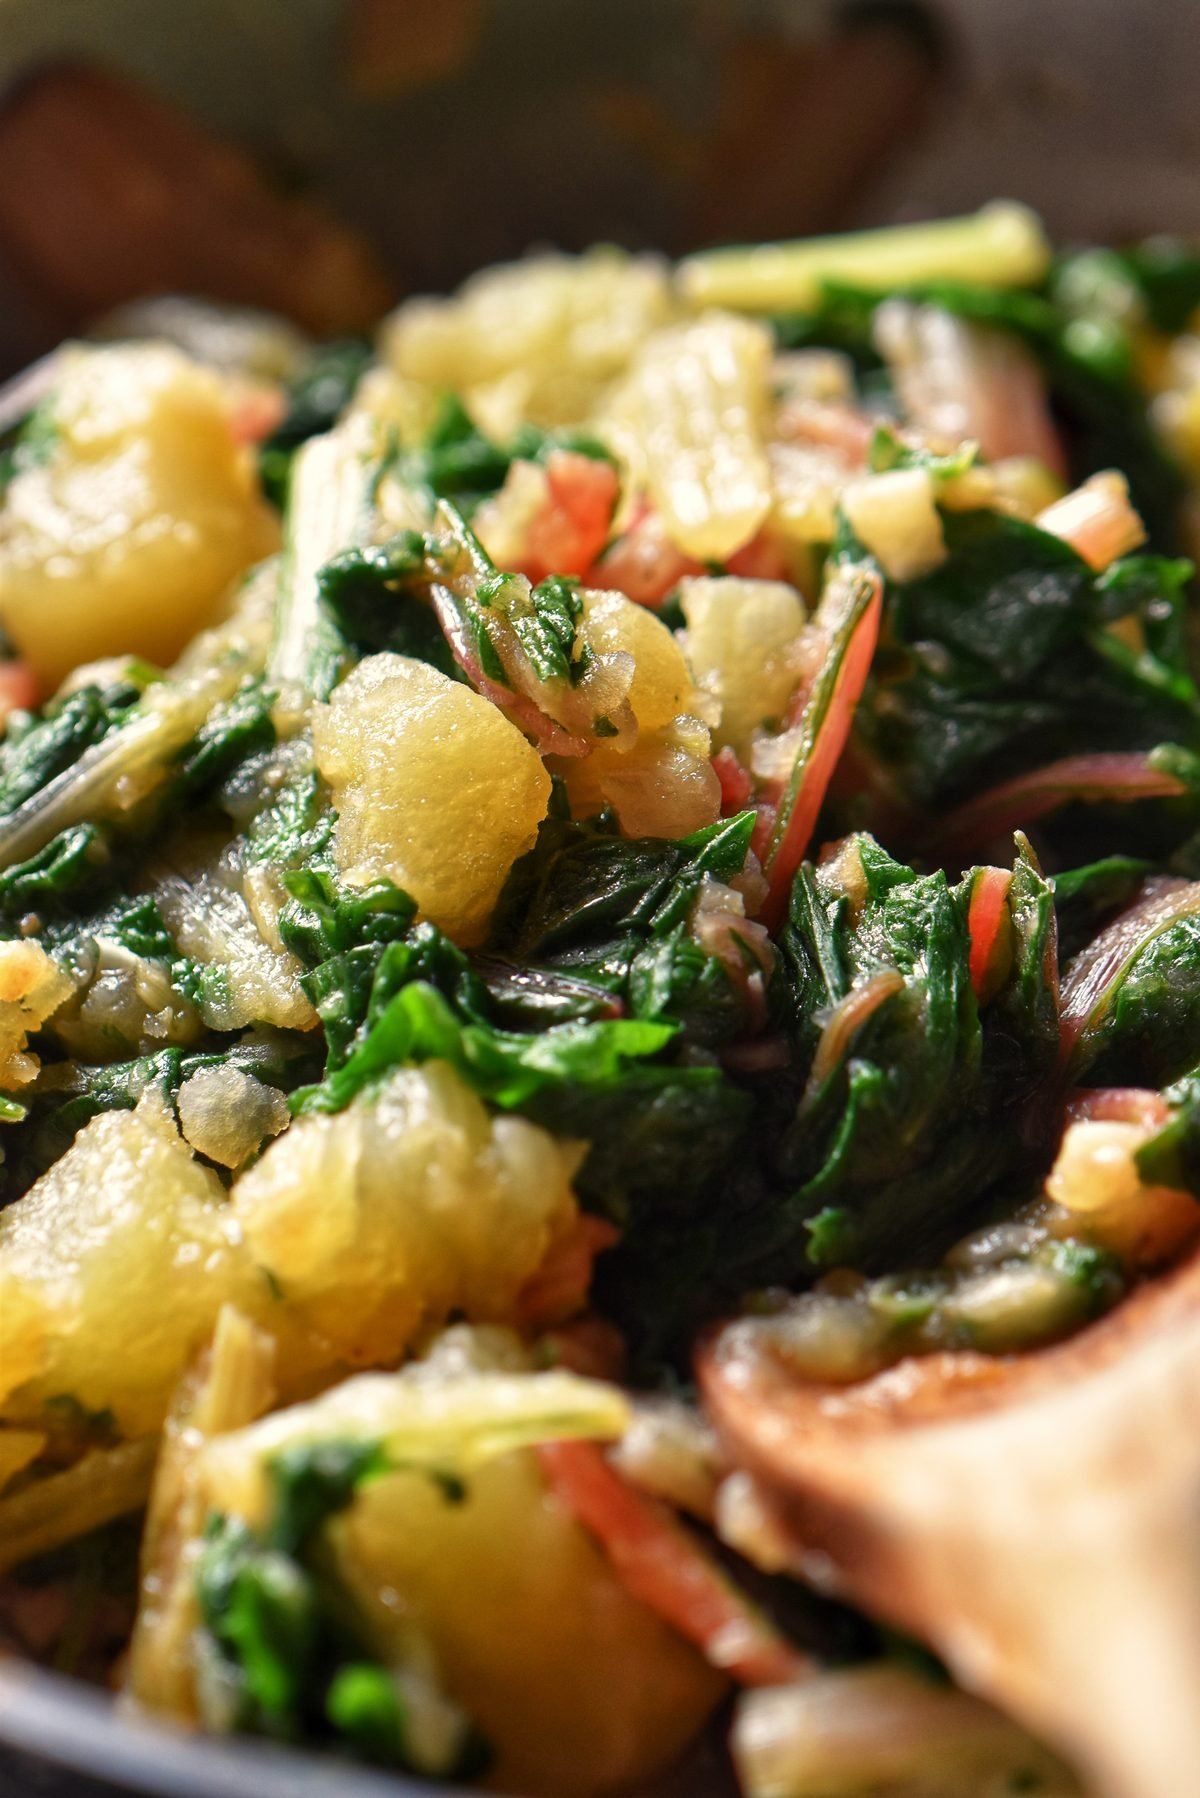 Potatoes and Swiss chard being sauteed together.